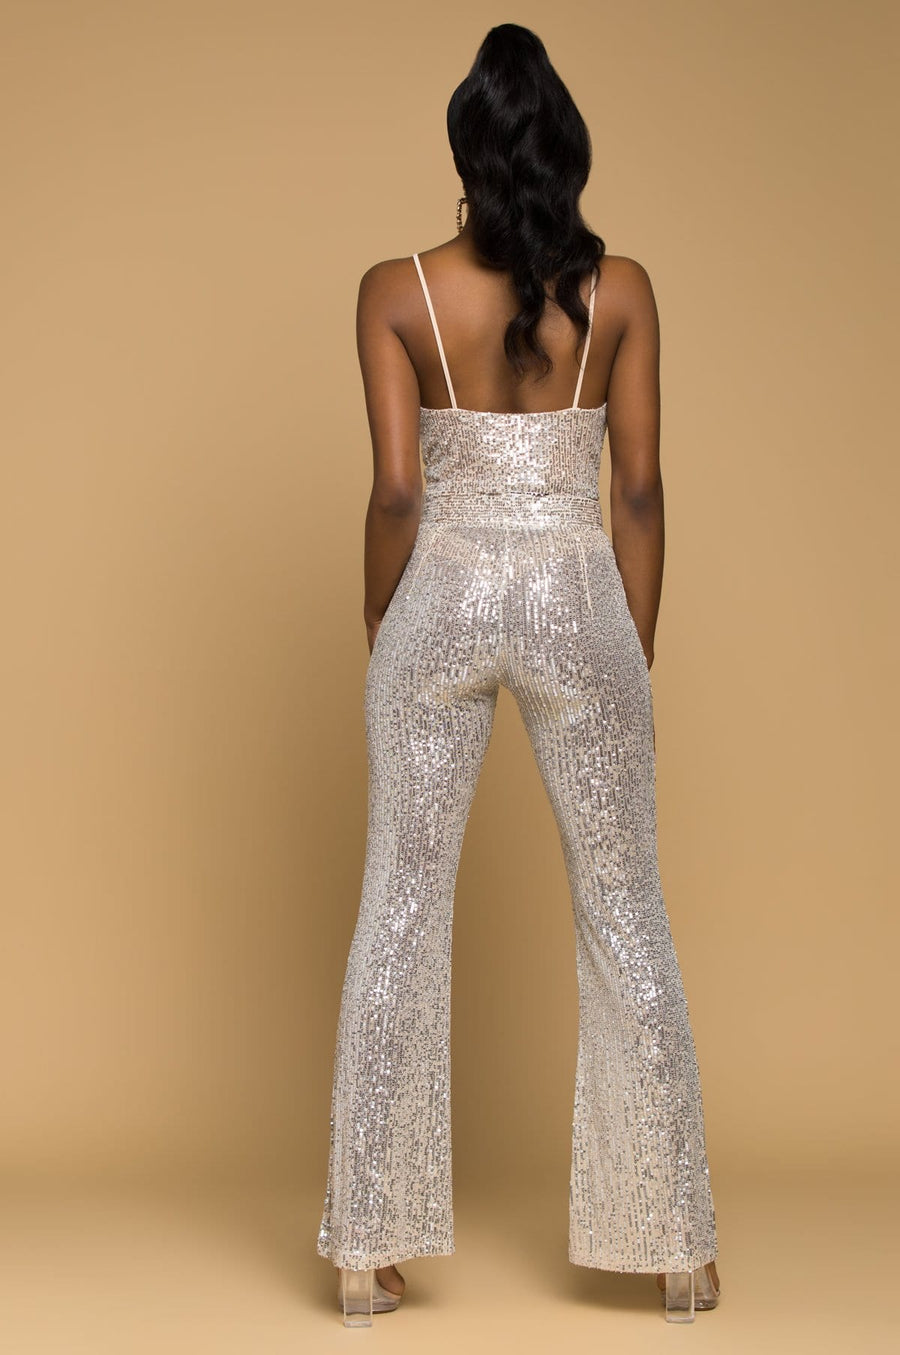 'Jessie' High Waisted Sequin Pants